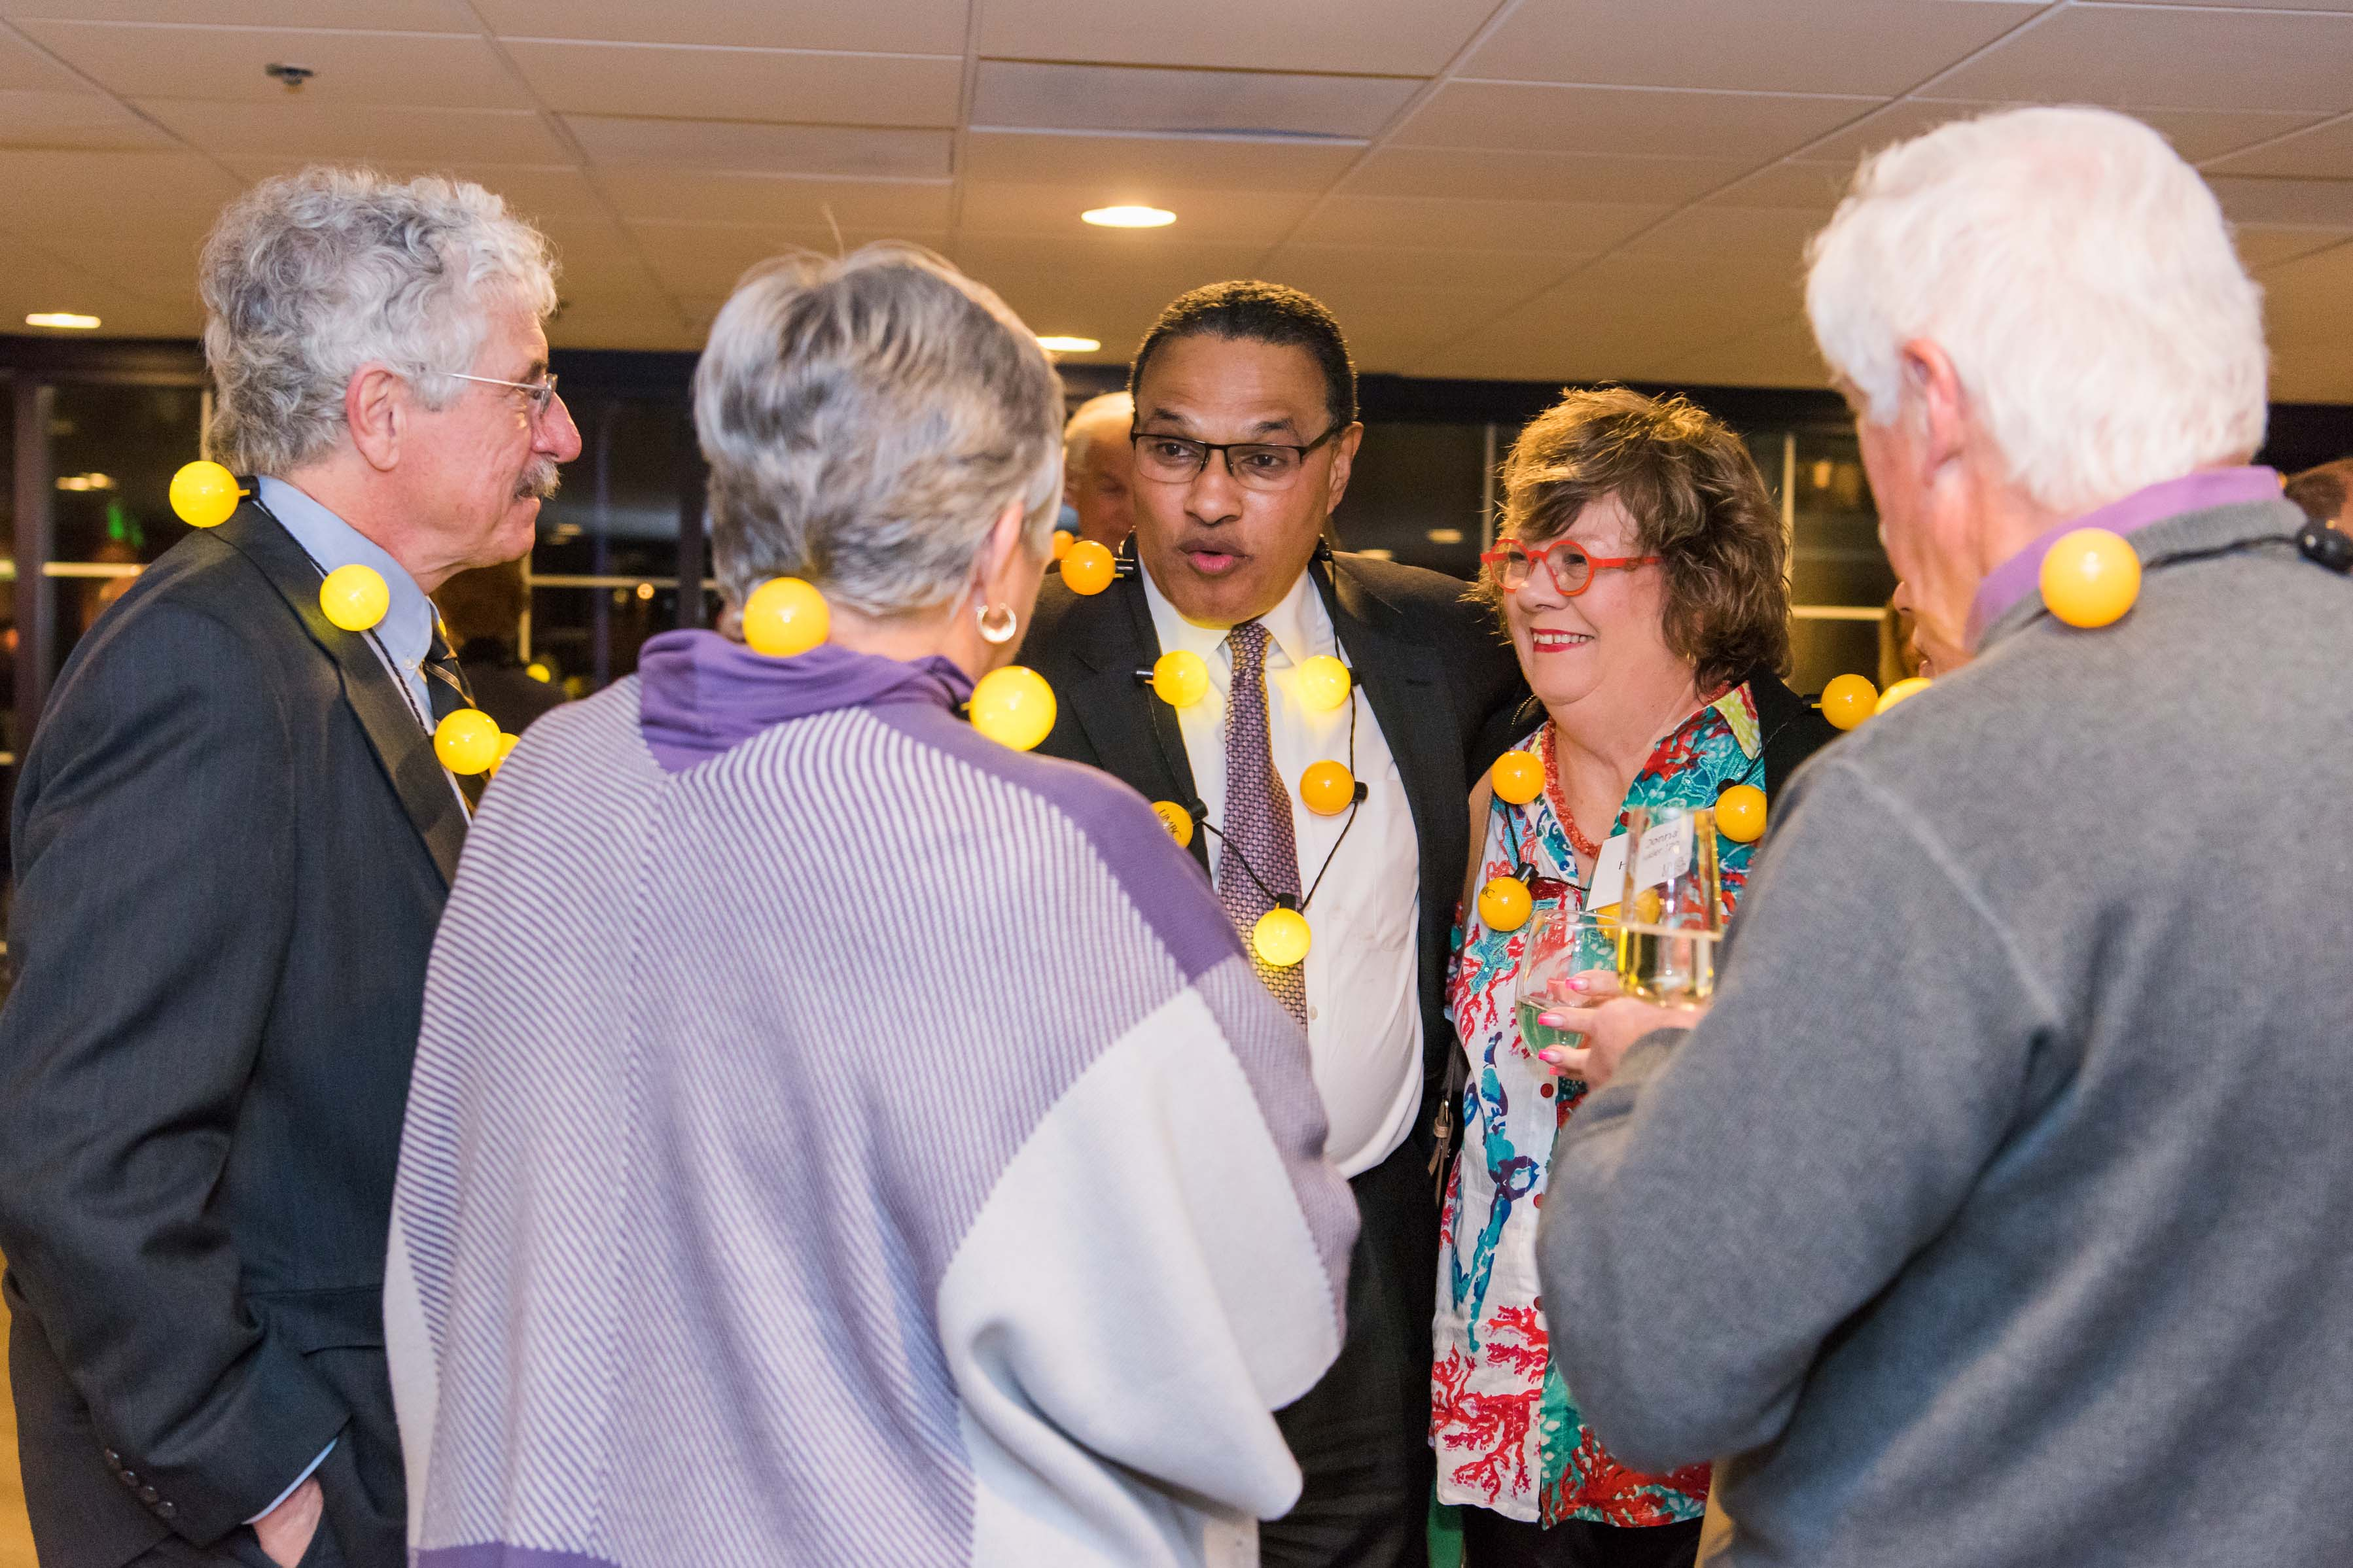 Hrabowski talks with group at Pier5 reception